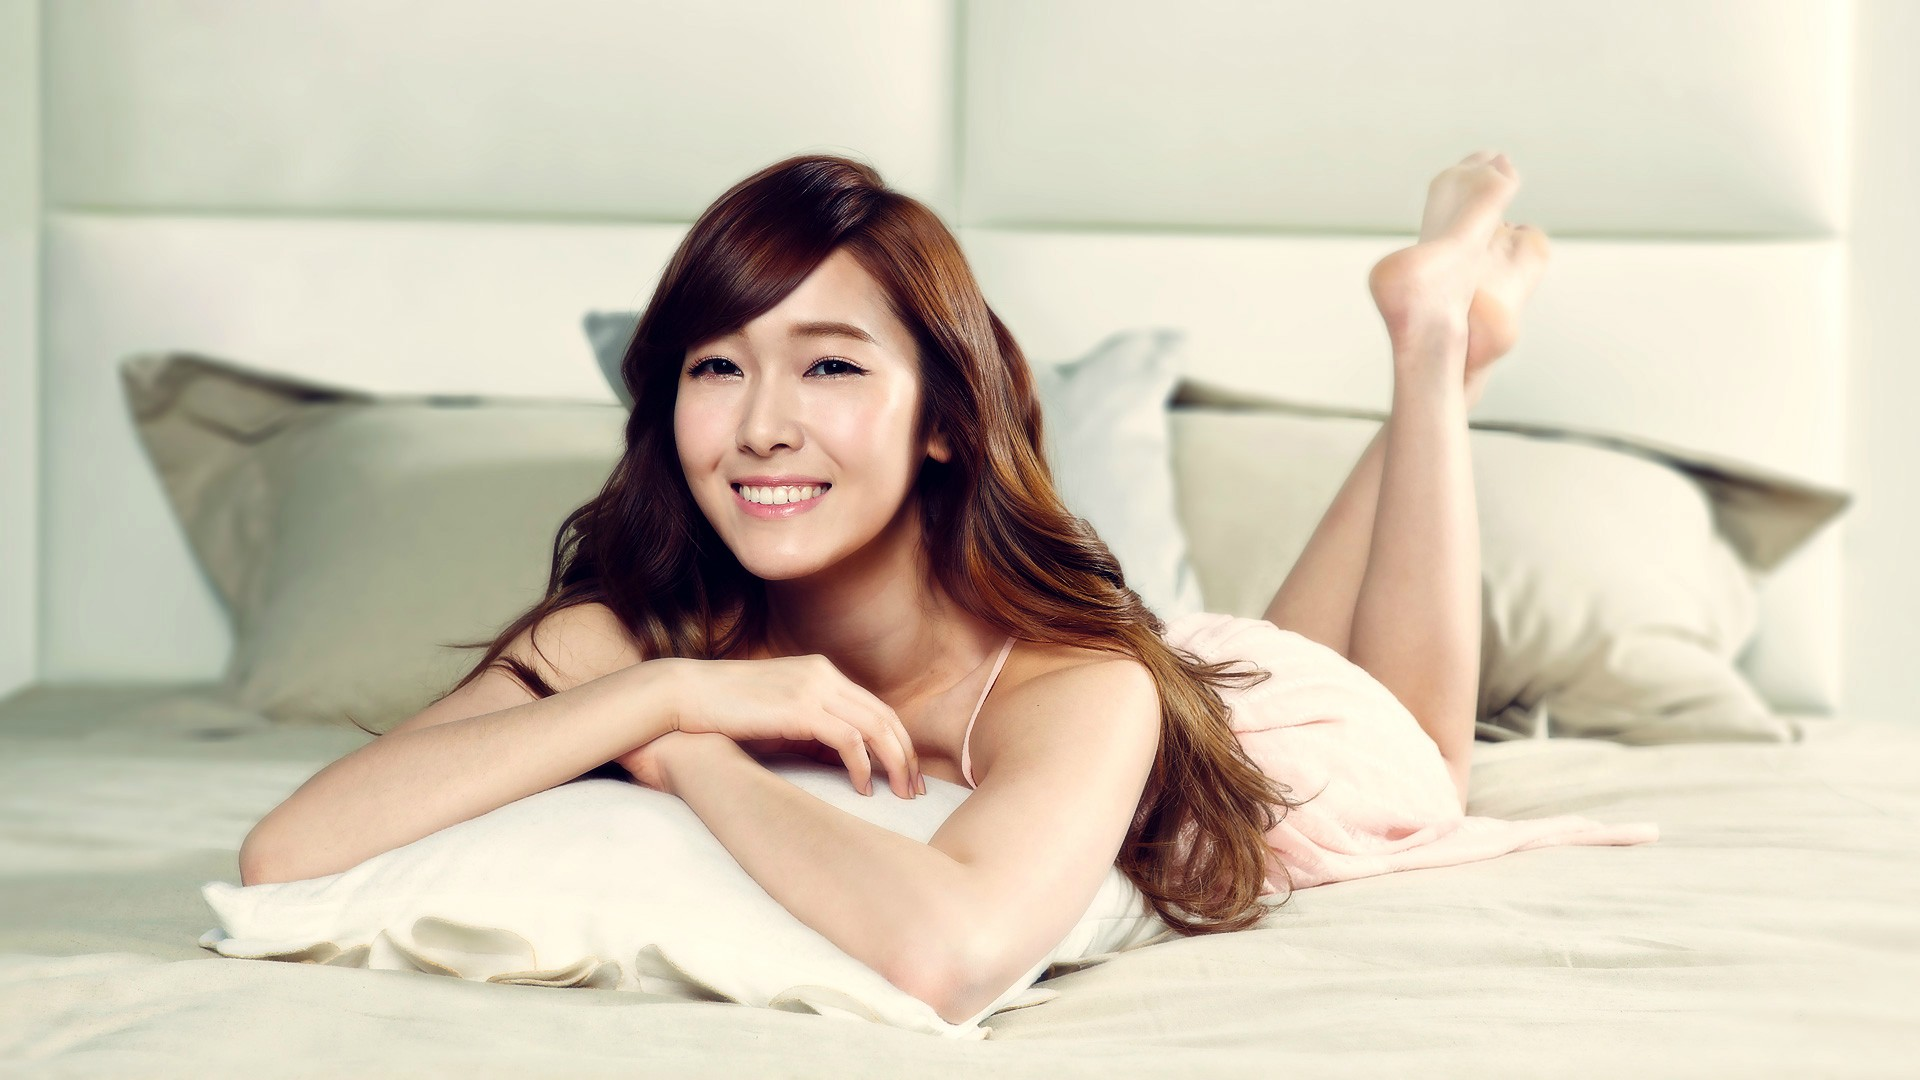 cute jessica jung smile wallpaper 55756